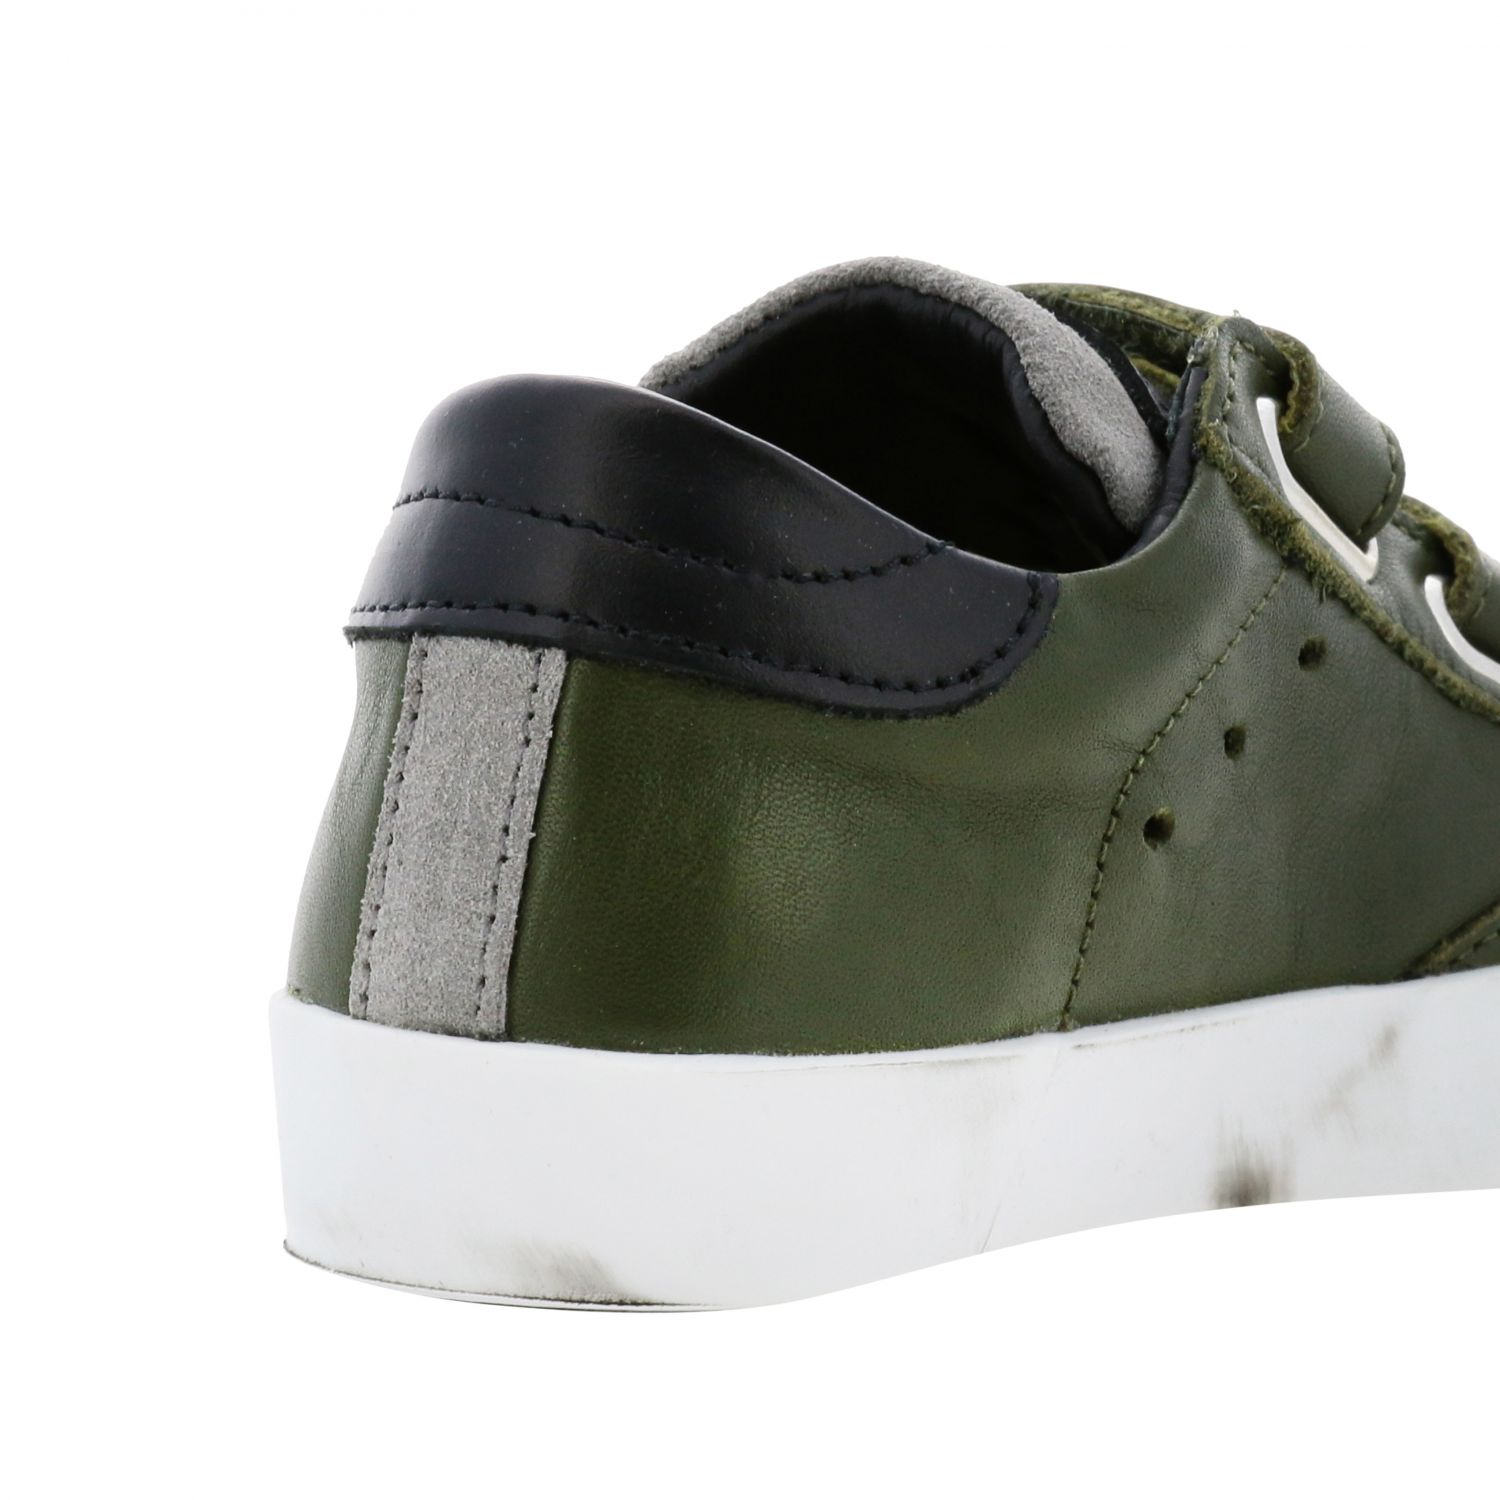 Shoes kids Philippe Model green 5